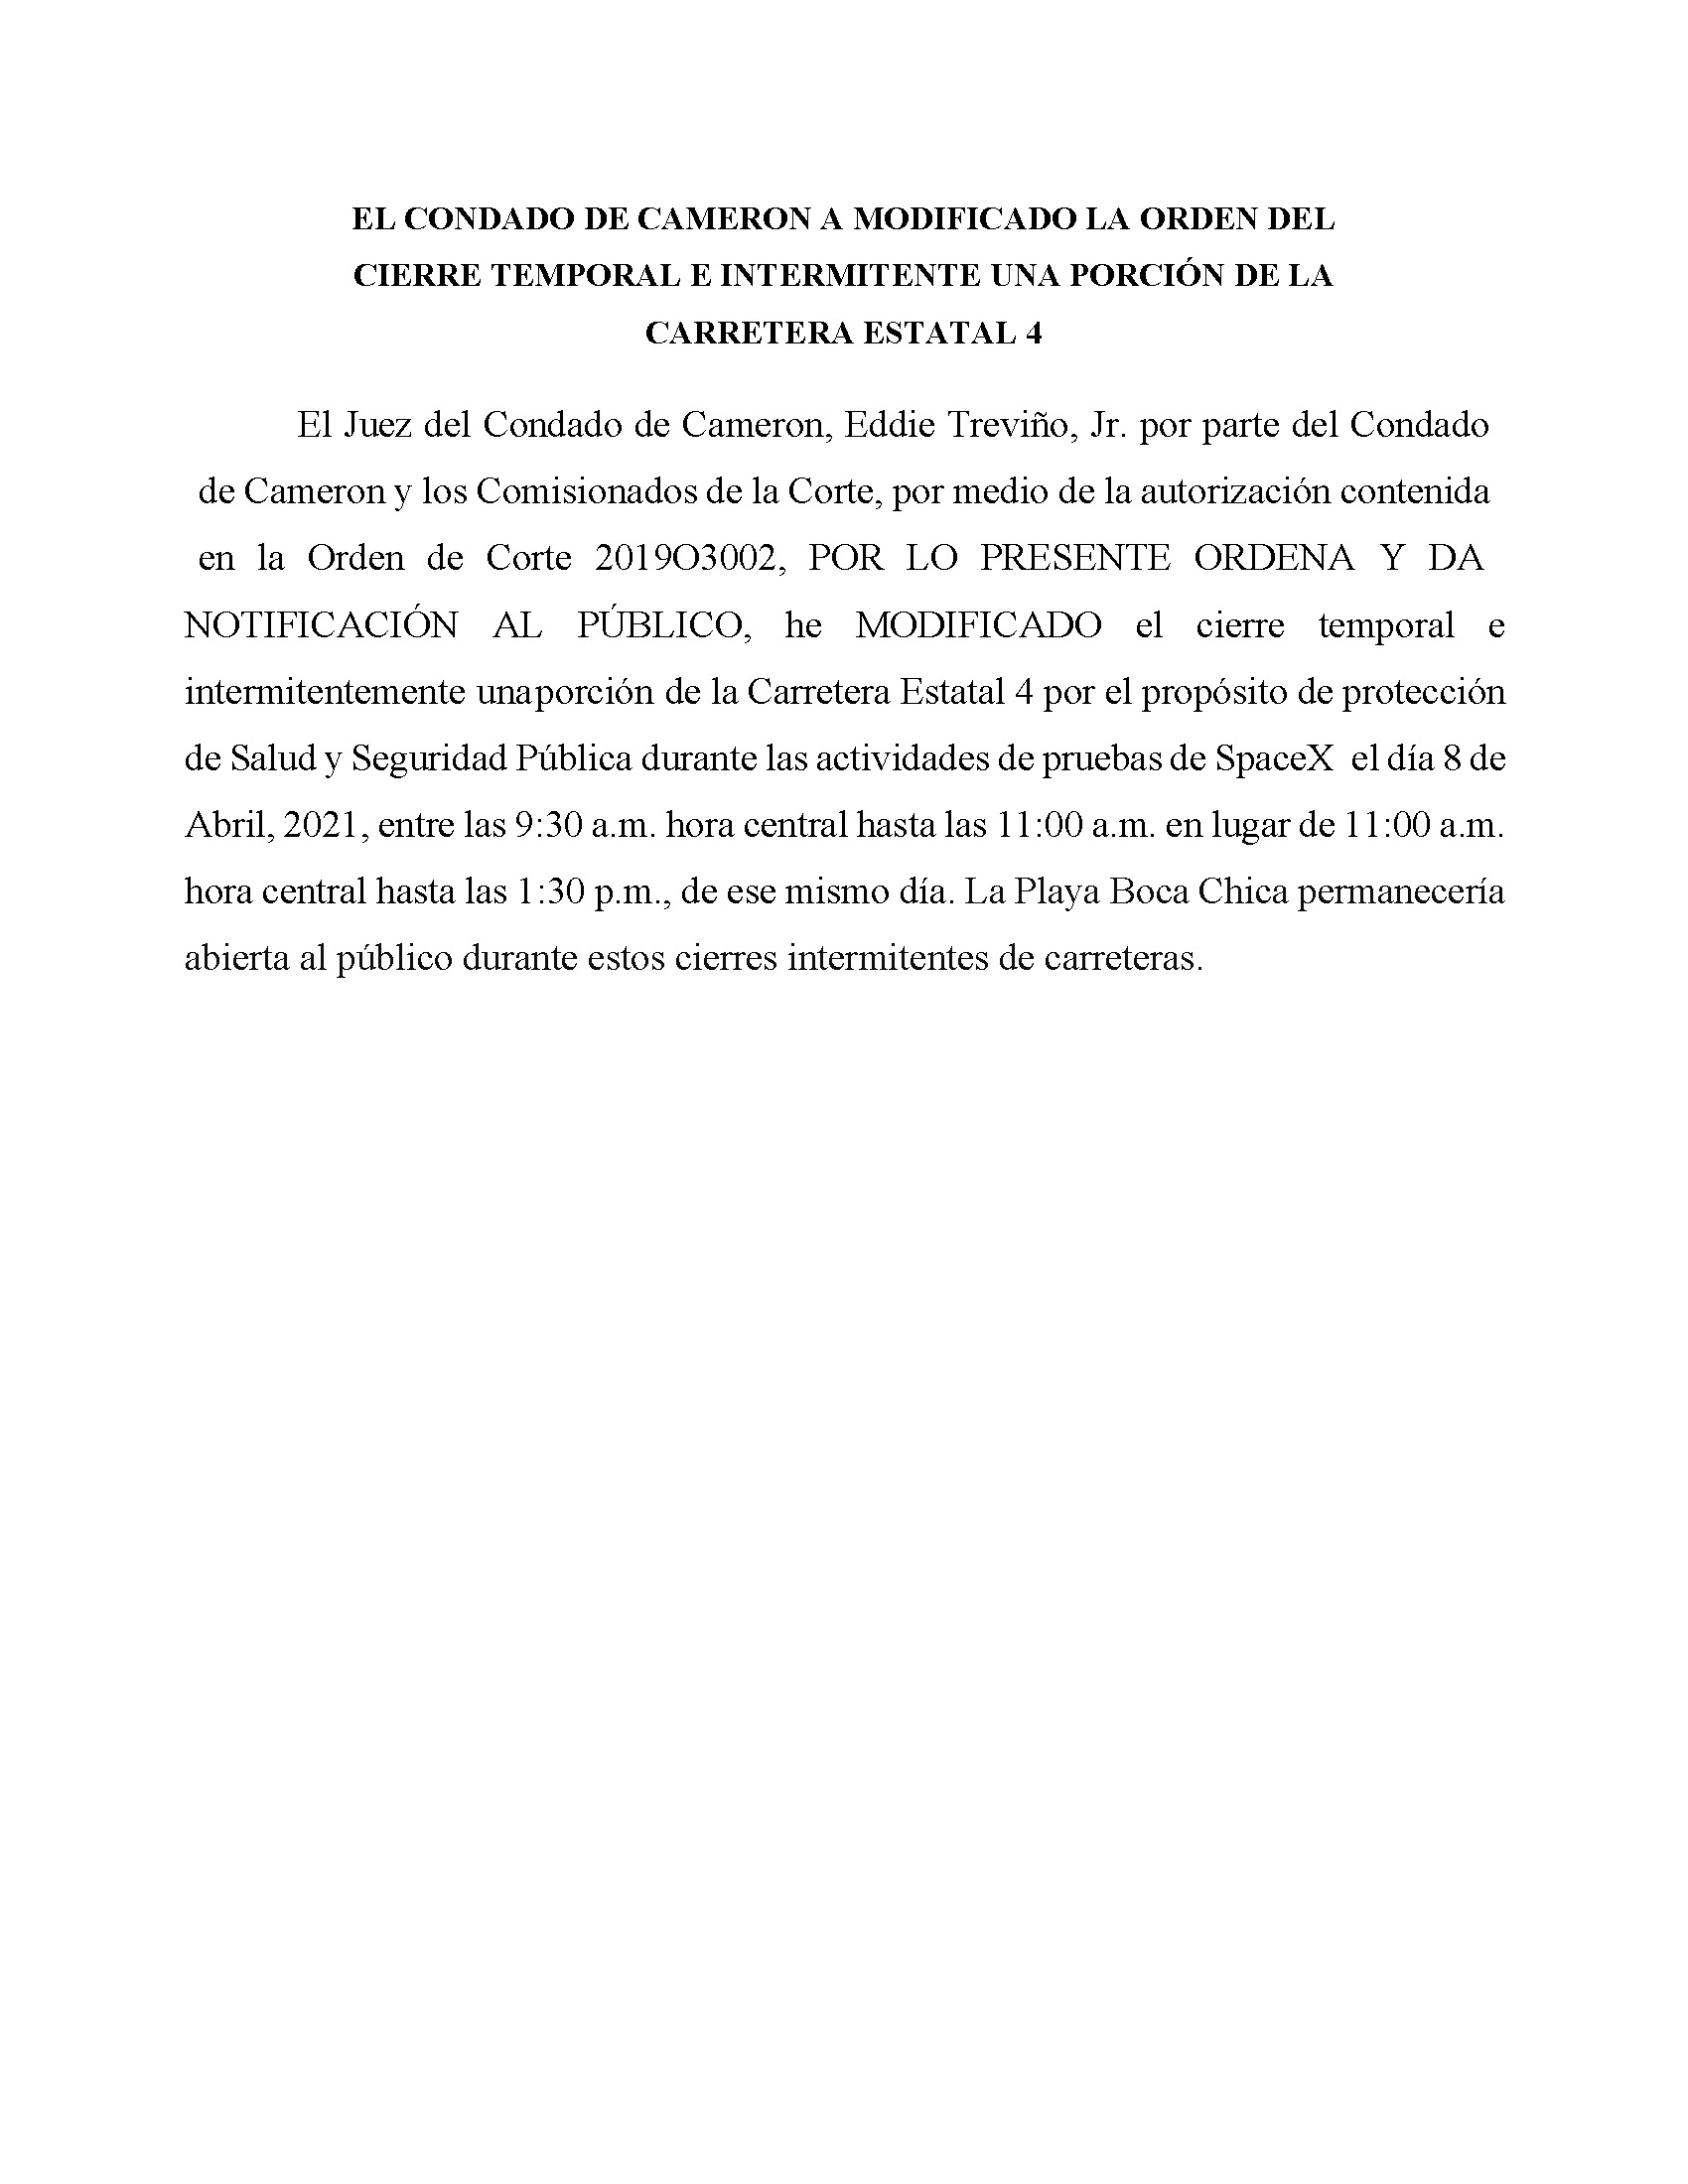 AMENDED ORDER.CLOSURE OF HIGHWAY 4.SPANISH.04.08.2021